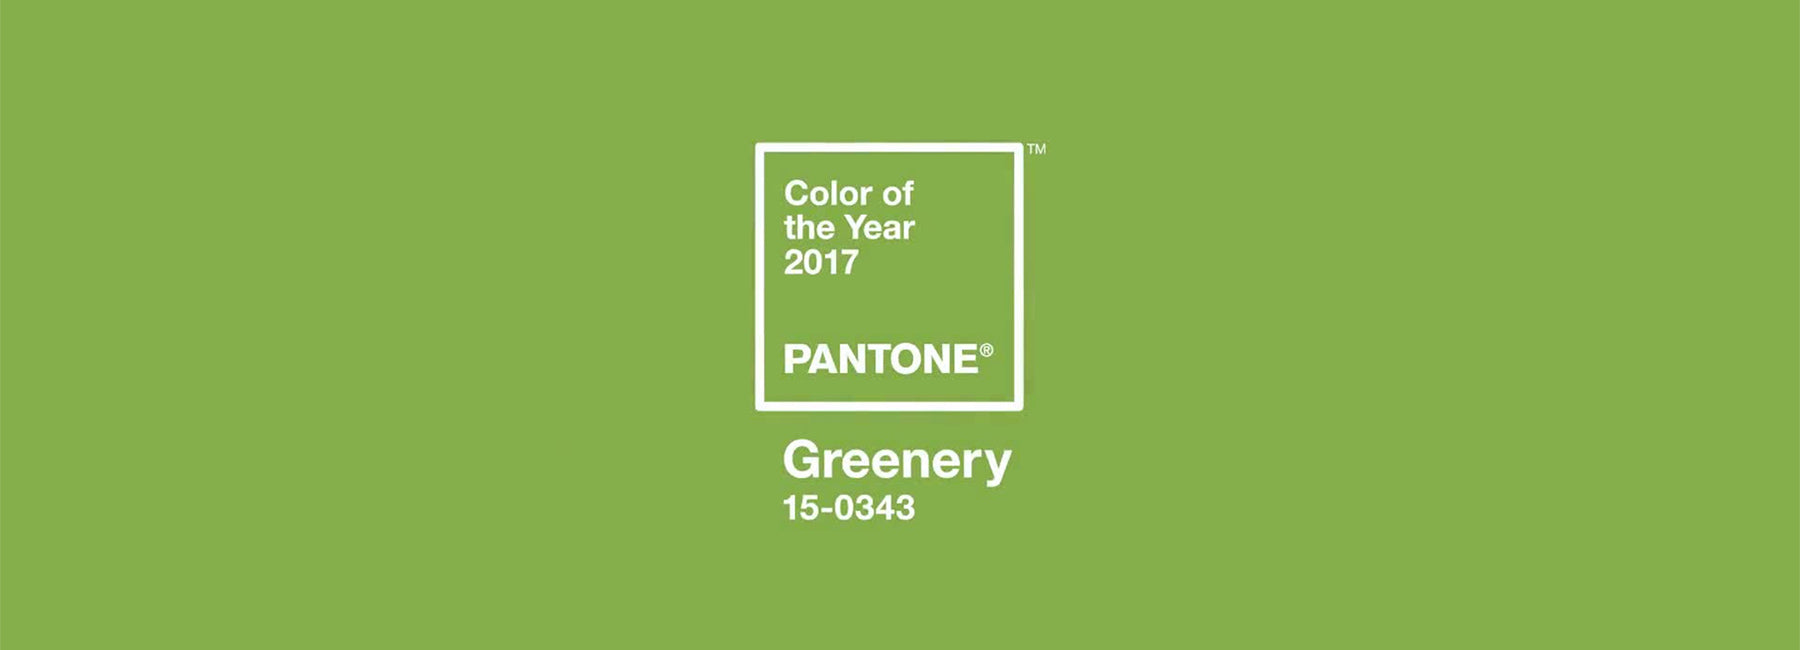 "Pantone Color of the Year 2017: ""Greenery"""